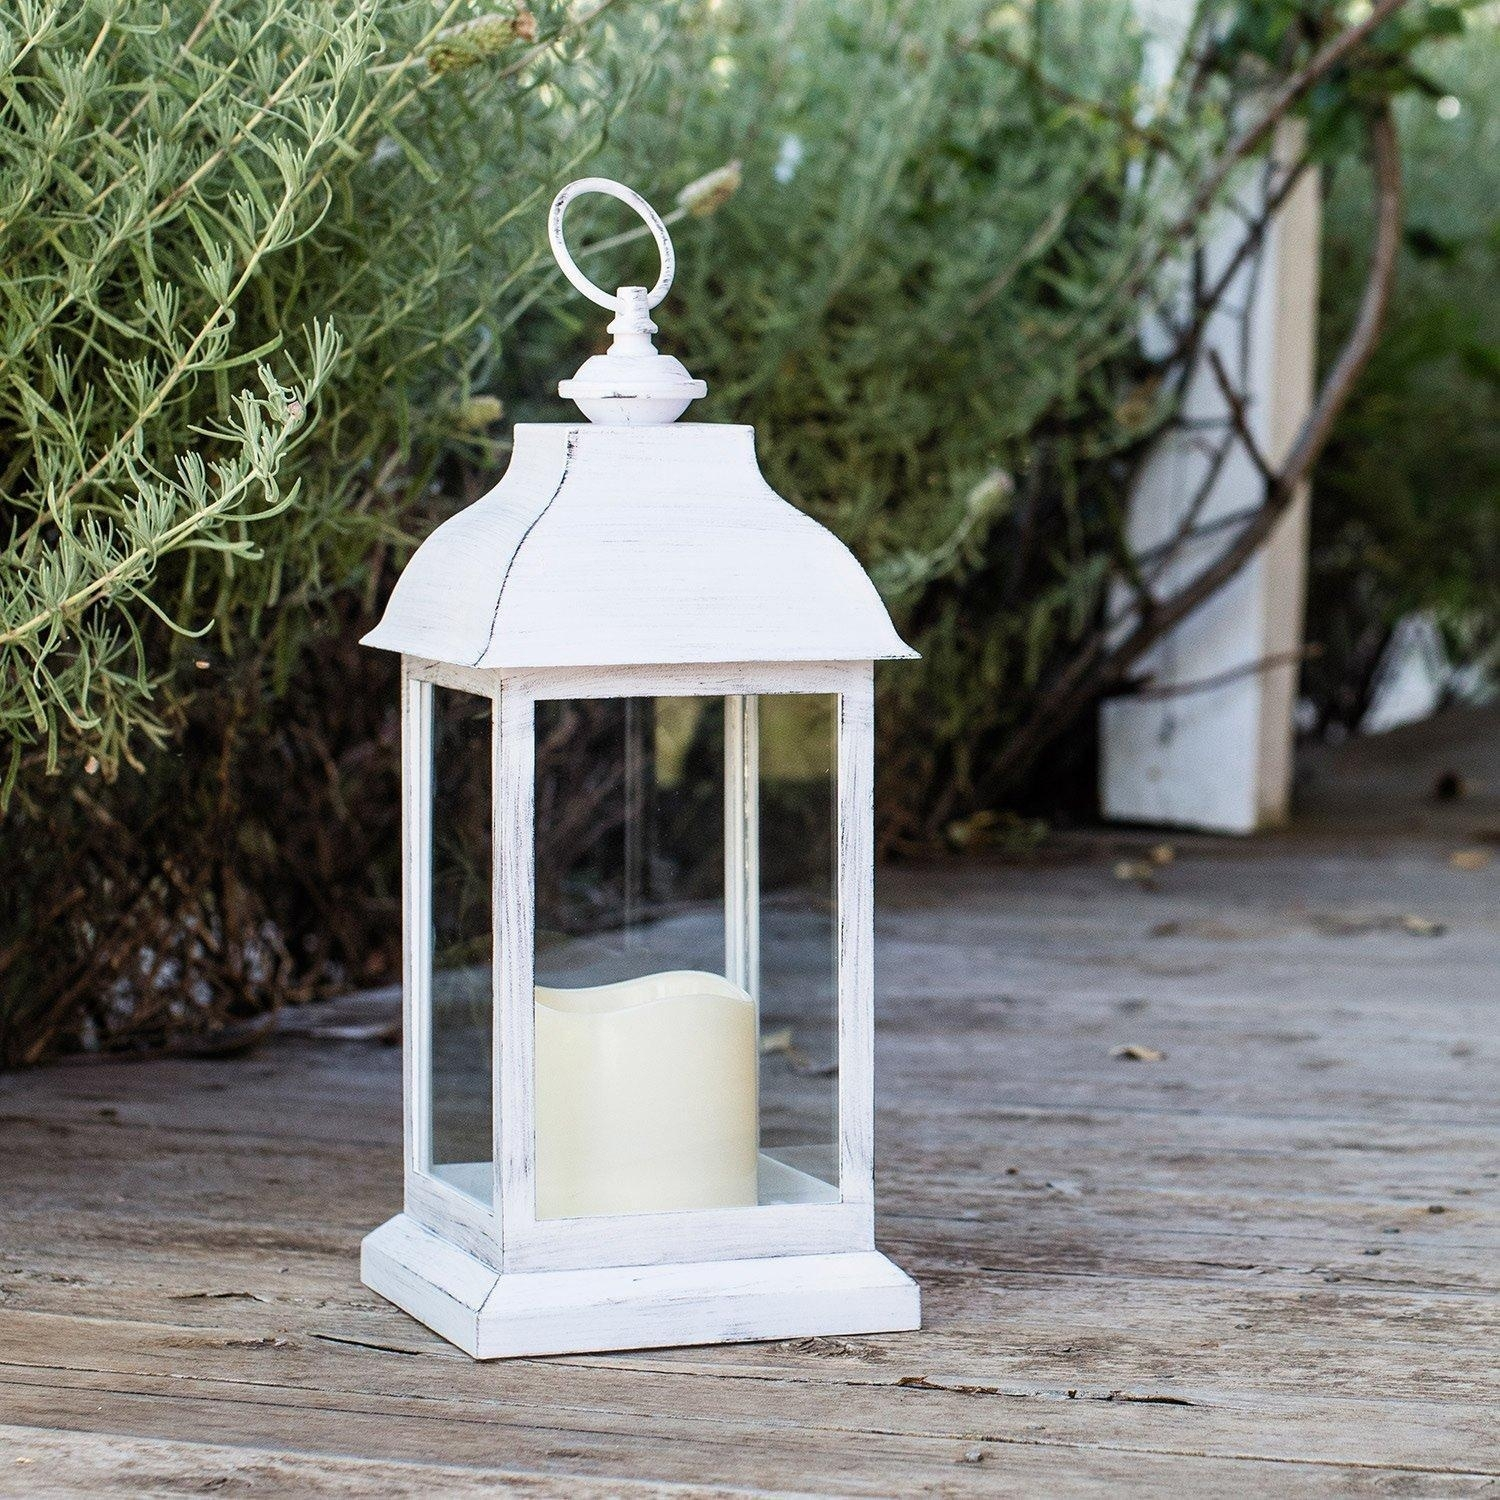 Outdoor Led Candle Lantern Battery Operated Timer Garden Patio Lamp Throughout Outdoor Lanterns With Battery Operated Candles (View 16 of 20)